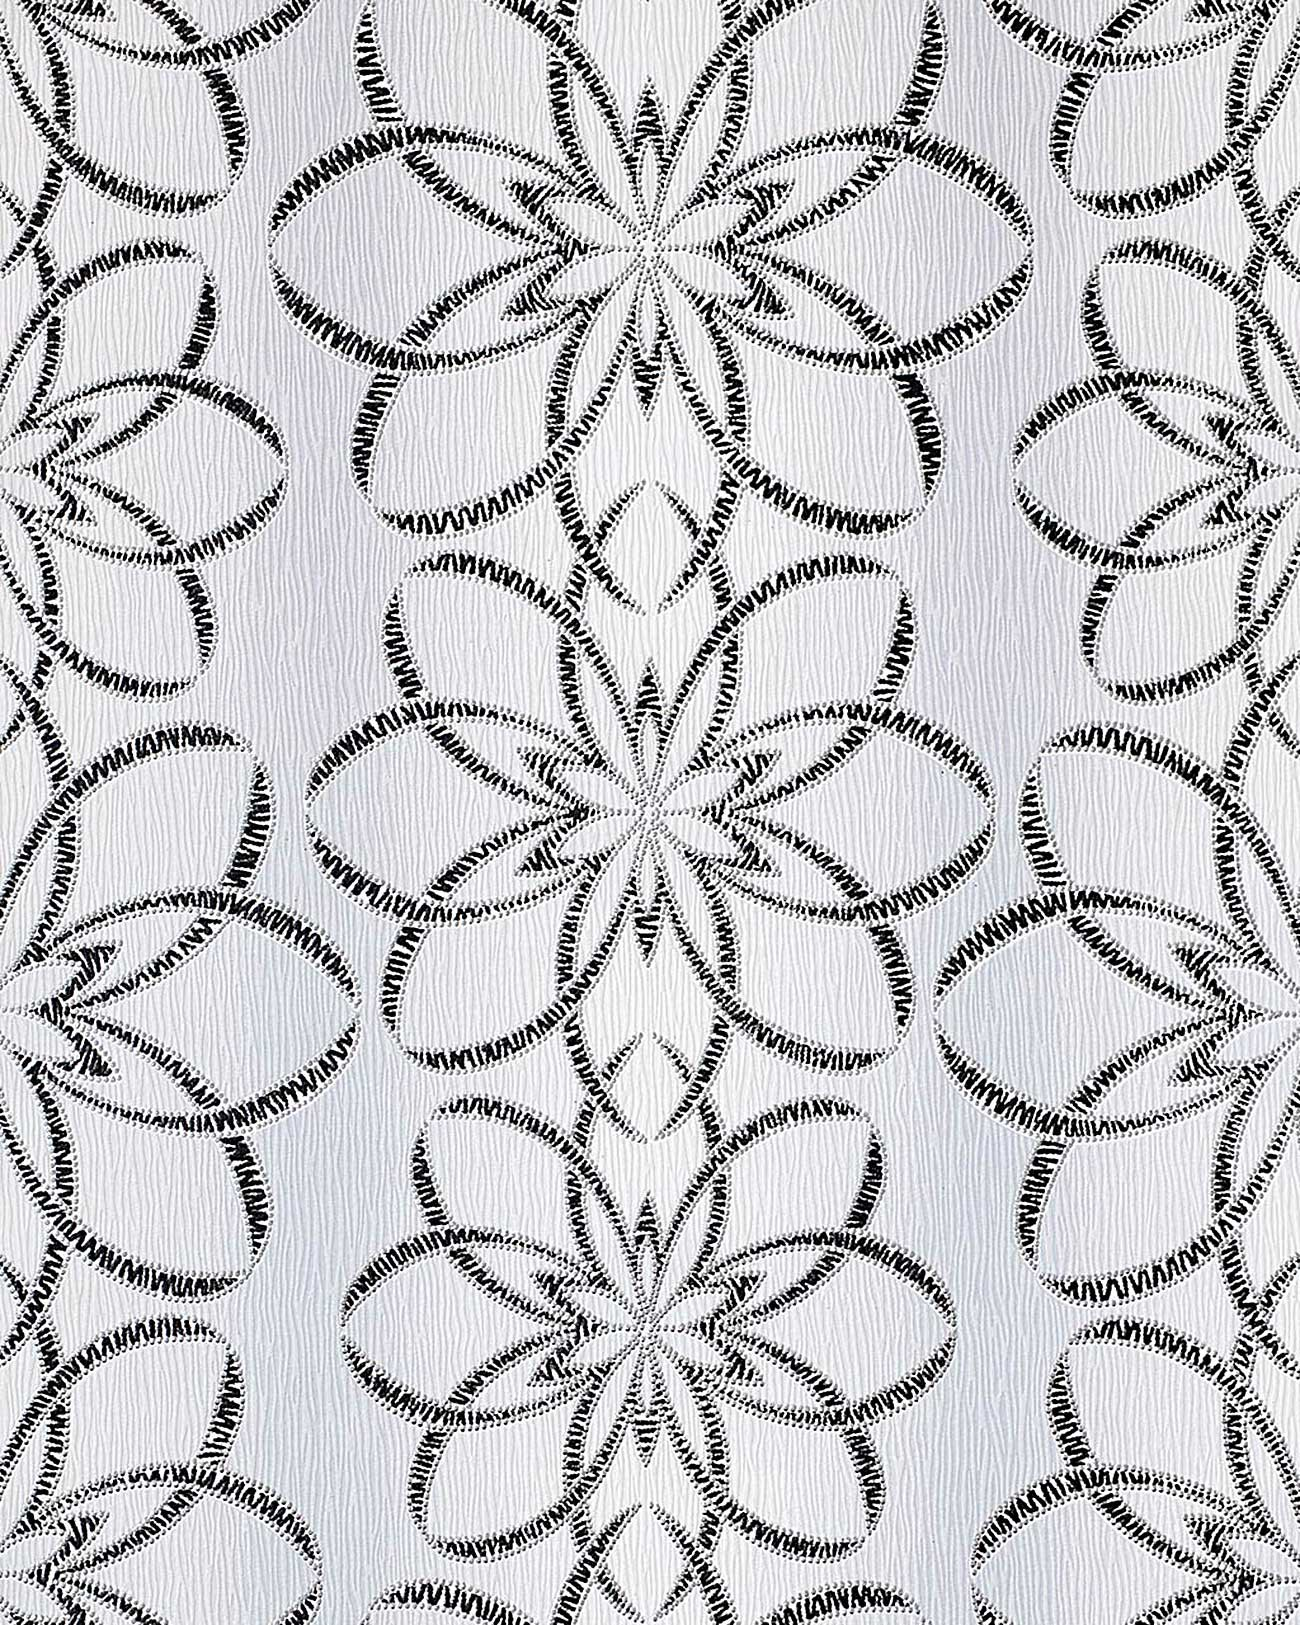 Tapeten Design Schwarz Wei? : Ornaments Silver Floral Wallpaper